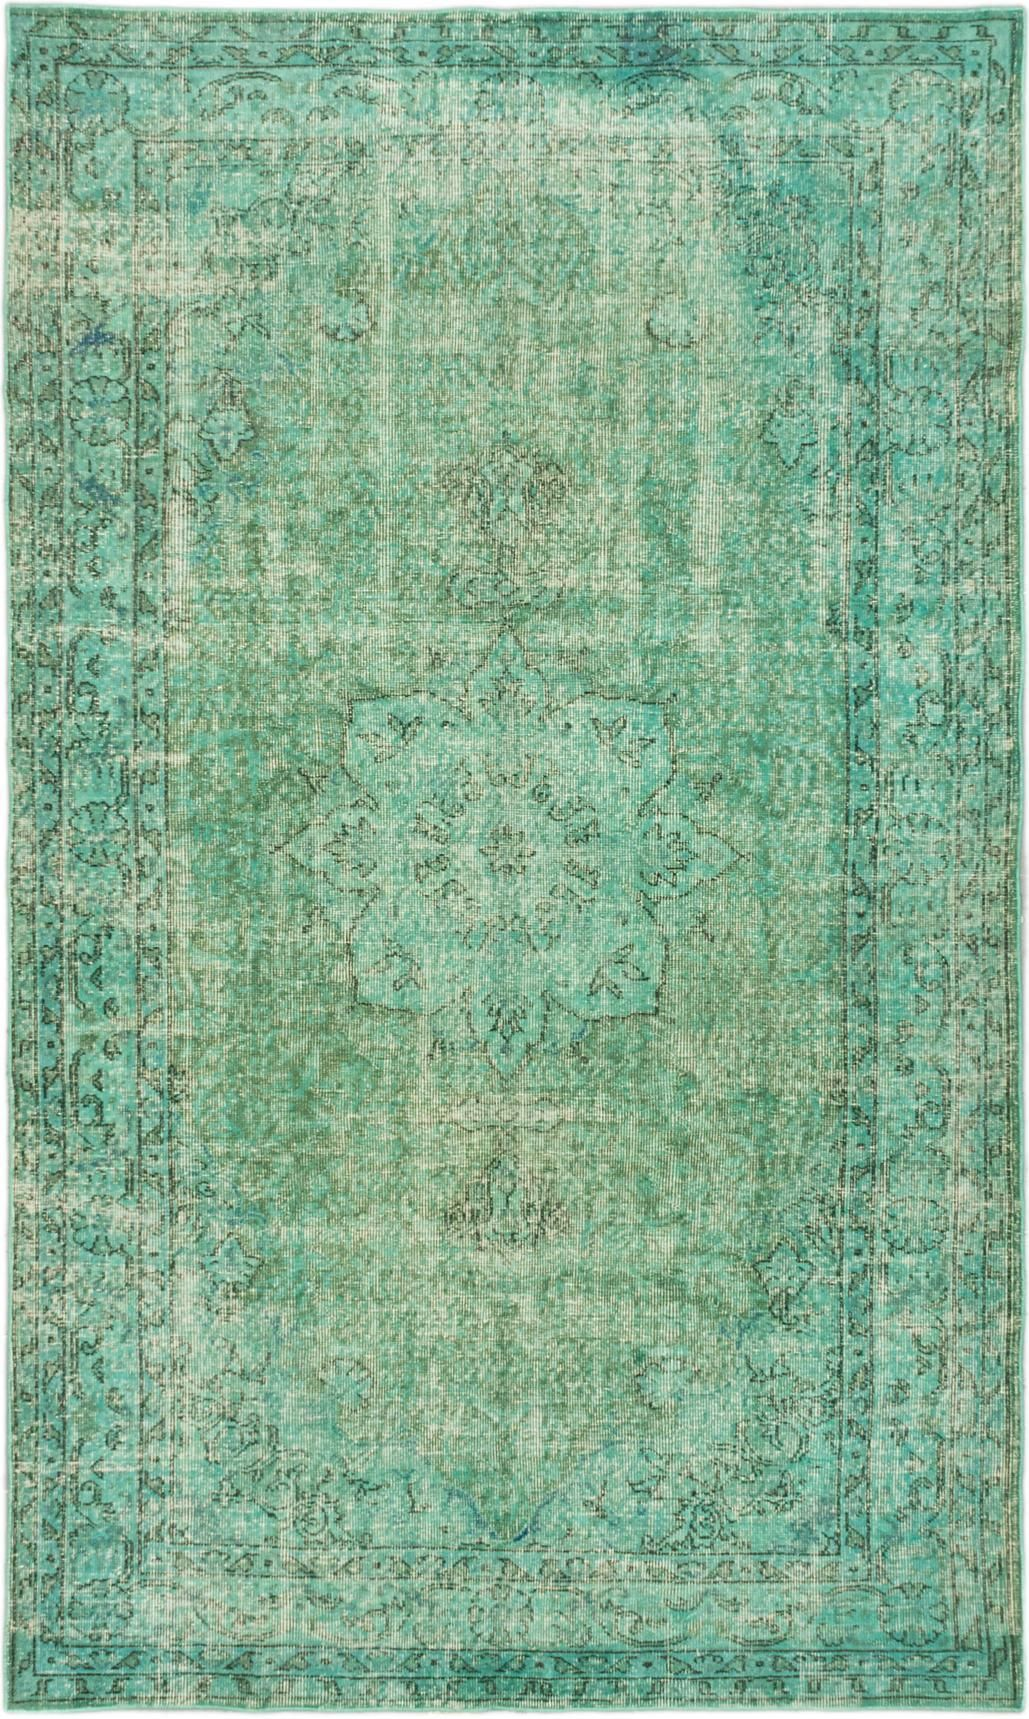 Green Vintage Turkish Overdyed Rug 5